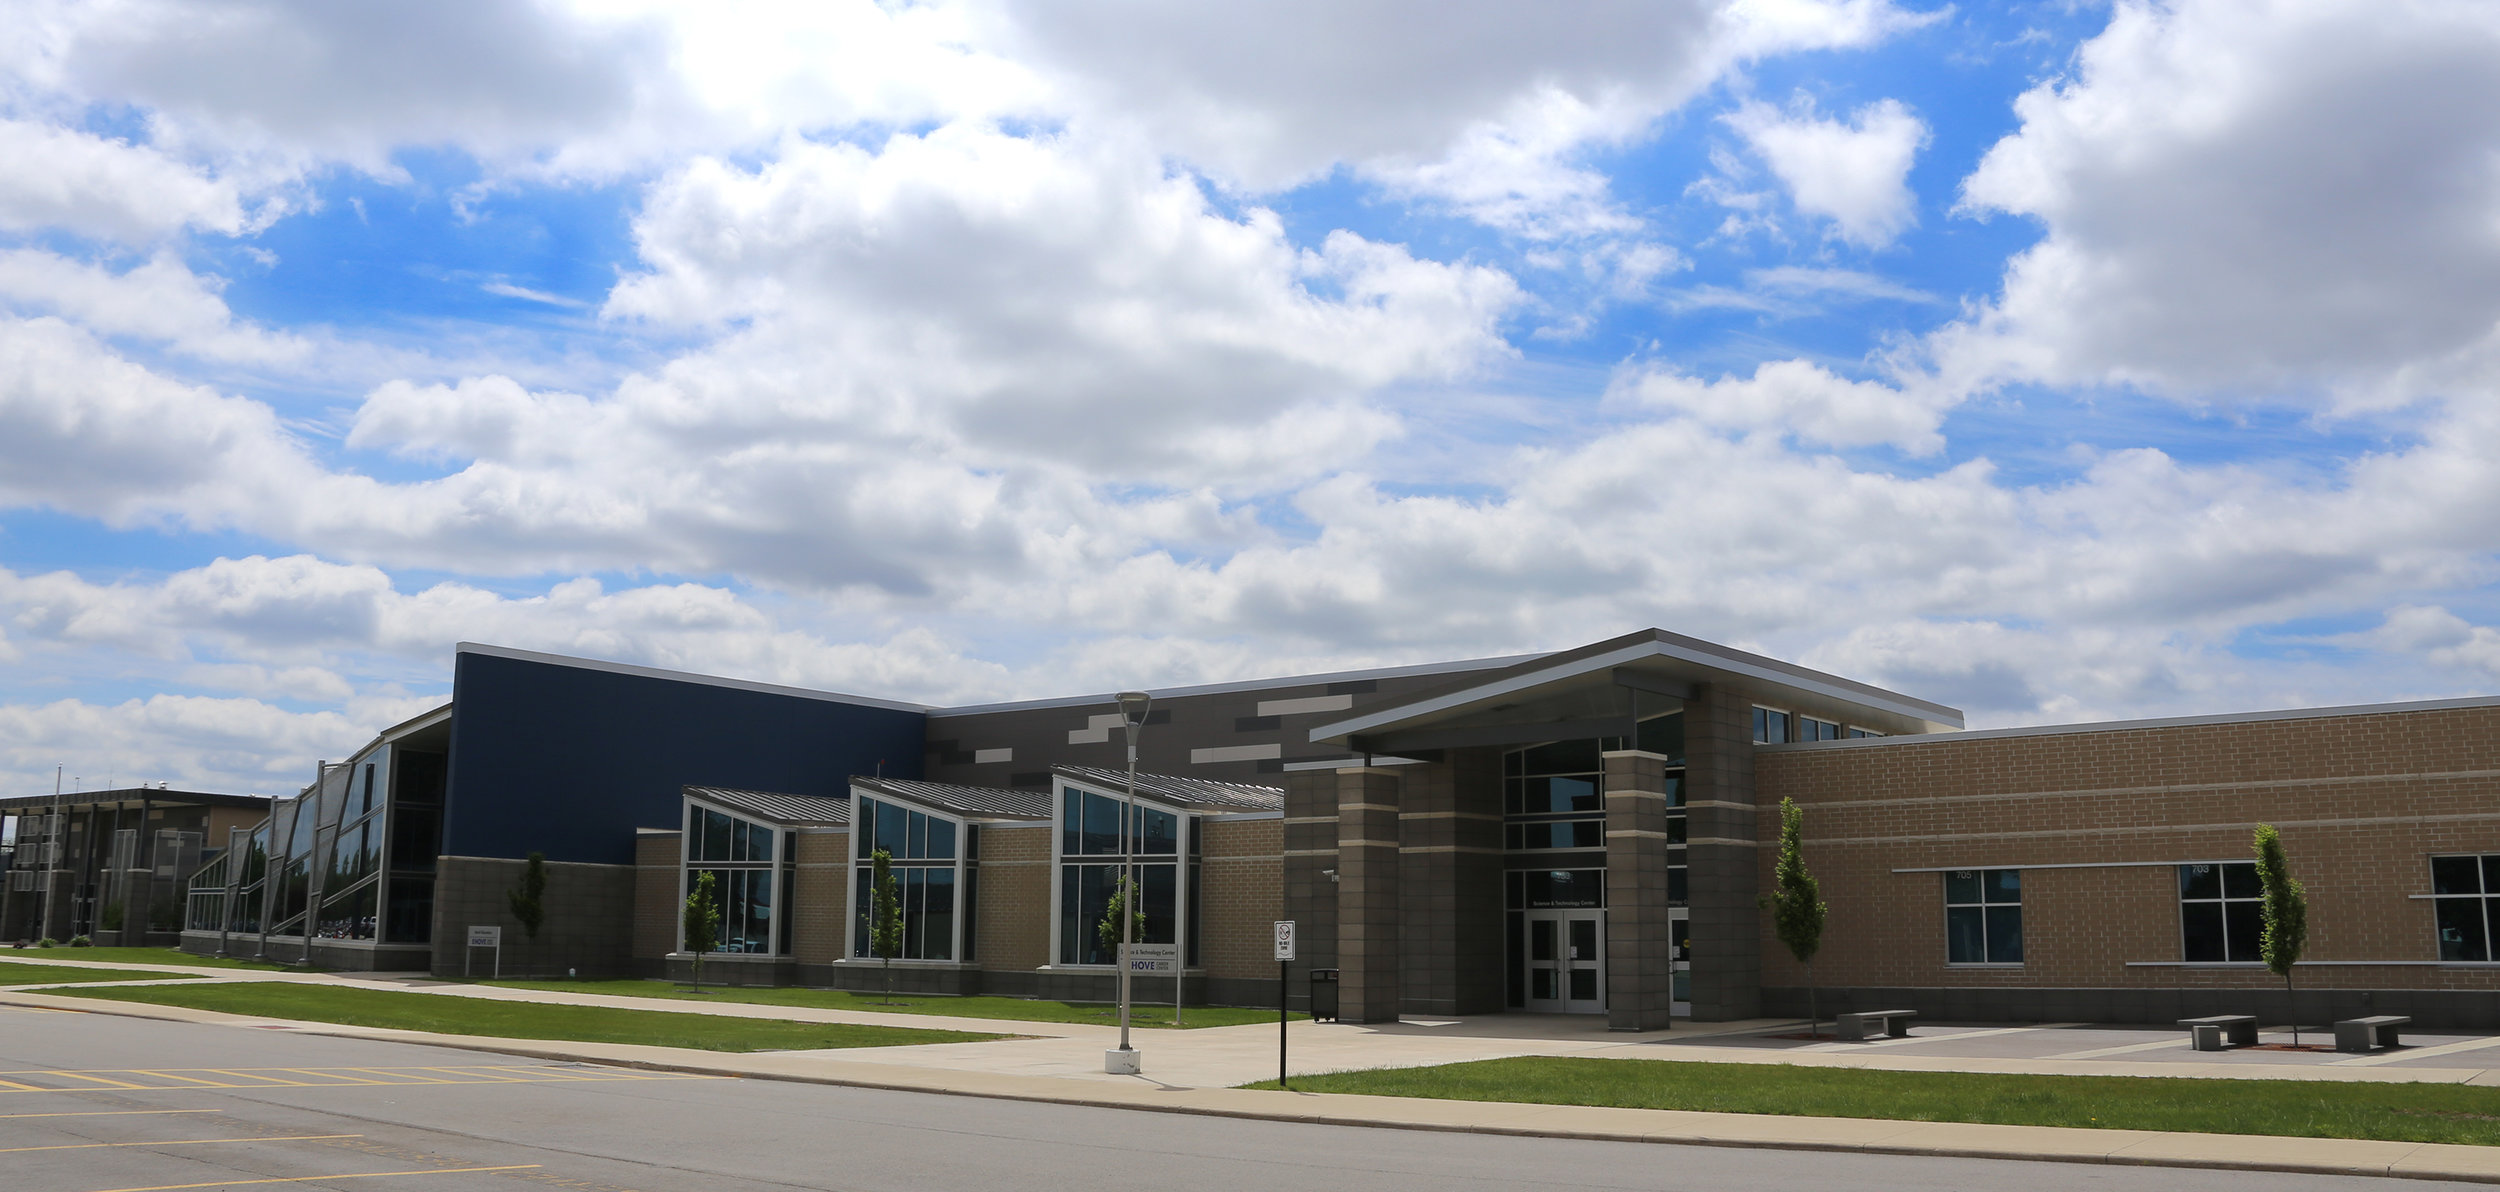 EHOVE Career Center - EHOVE Career Center, located 7 miles from Norwalk in Milan Township, is a leading career tech school. A high school and adult educational facility, EHOVE offers unique learning opportunities for all ages.